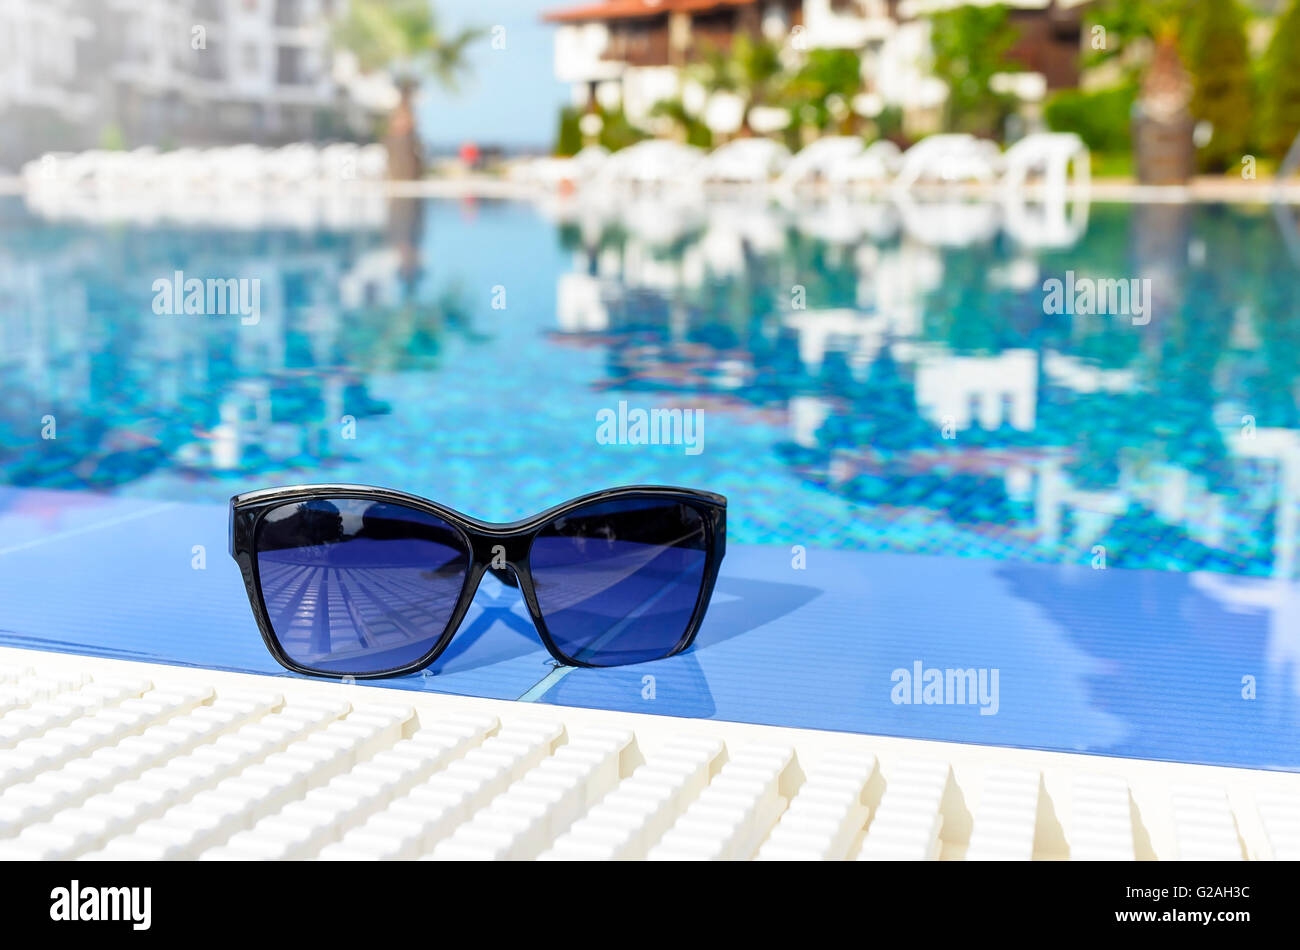 Beautiful sunglasses by the pool lying in the water. - Stock Image